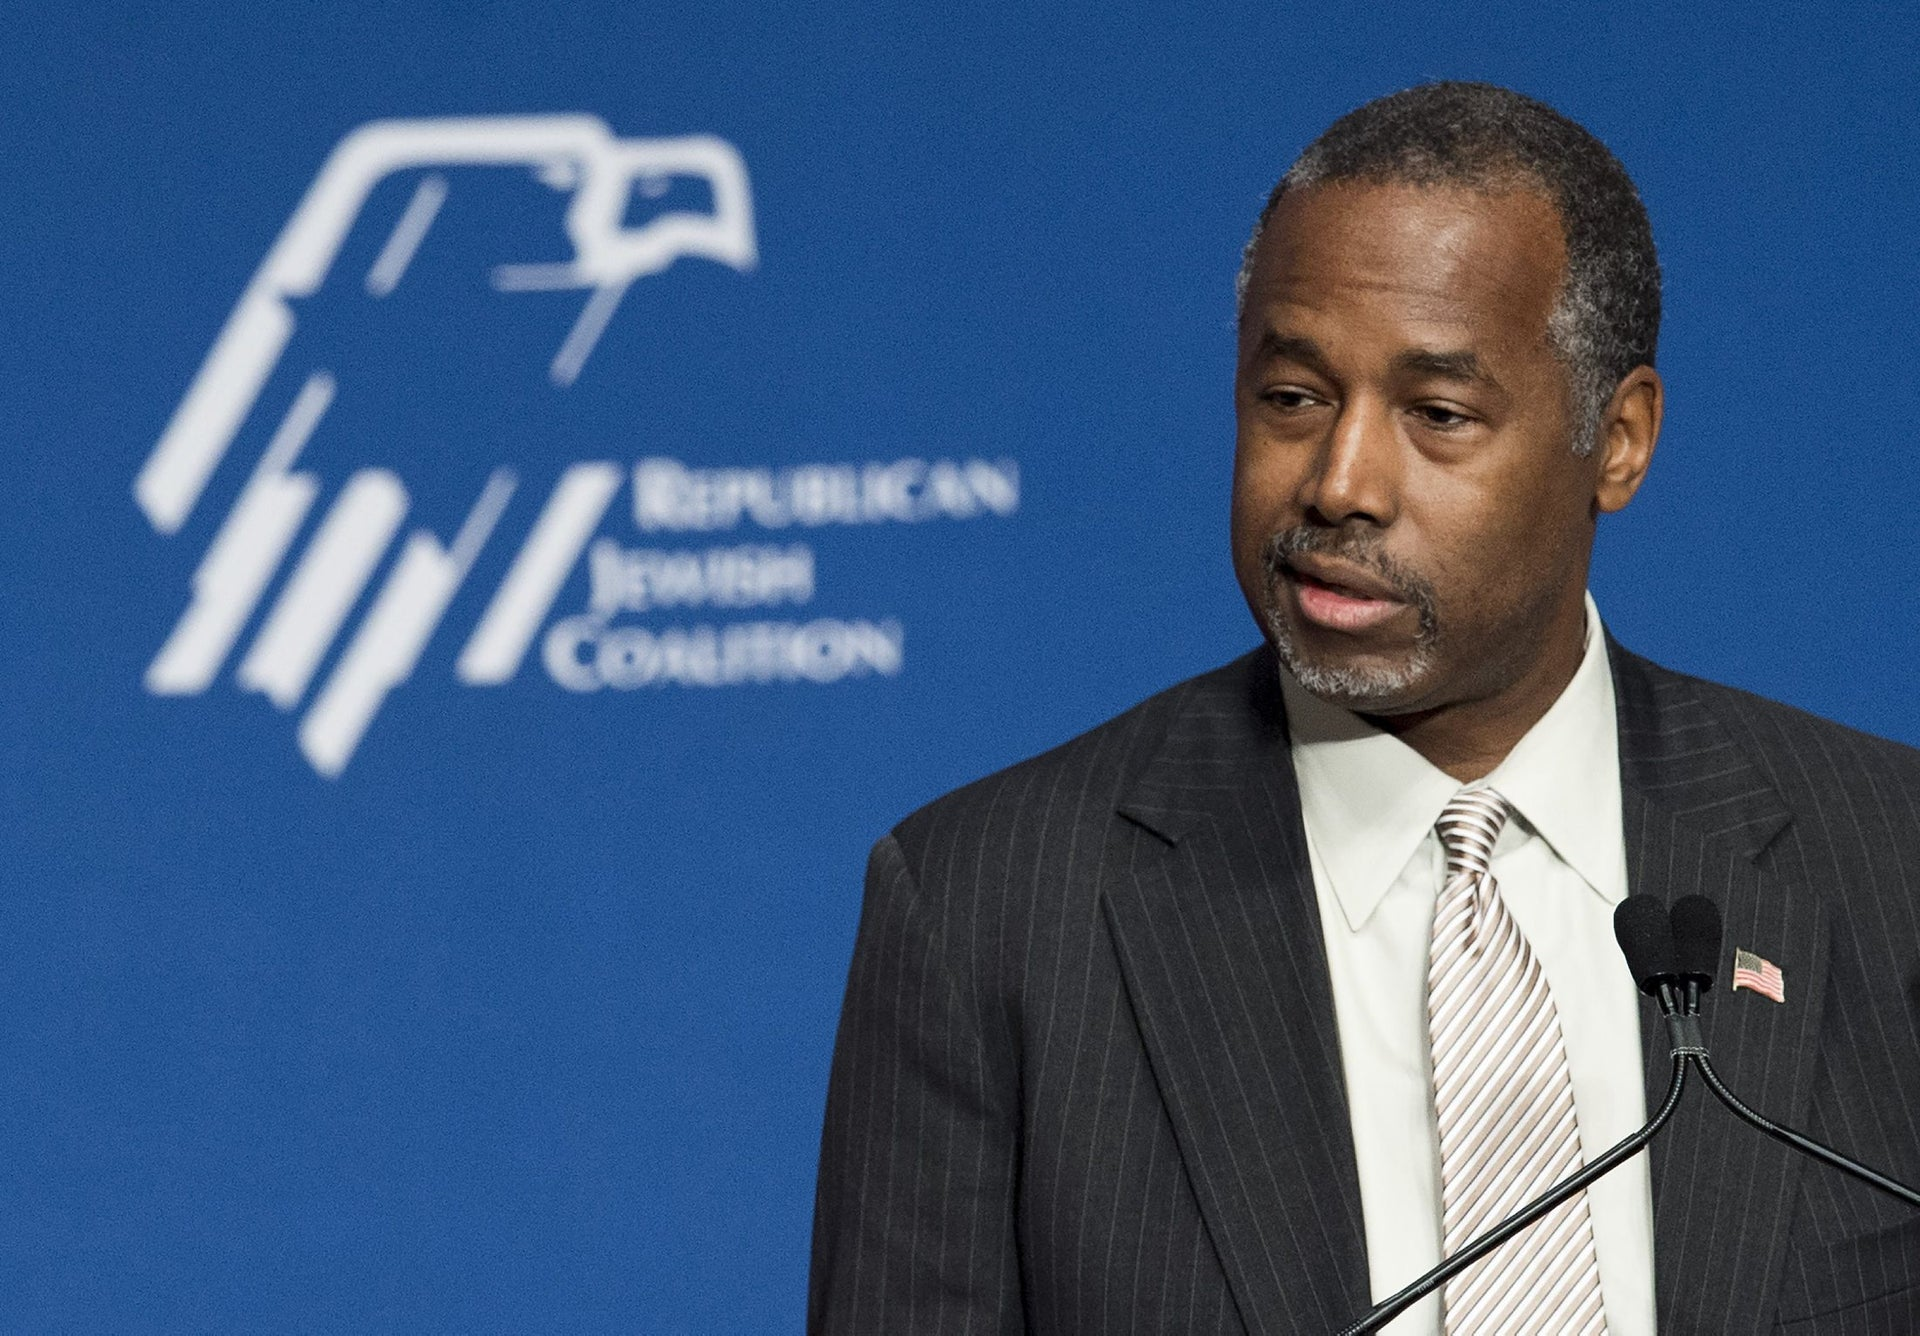 Republican Presidential hopeful Ben Carson speaks during the 2016 Republican Jewish Coalition Presidential Candidates Forum in Washington, DC, December 3, 2015.